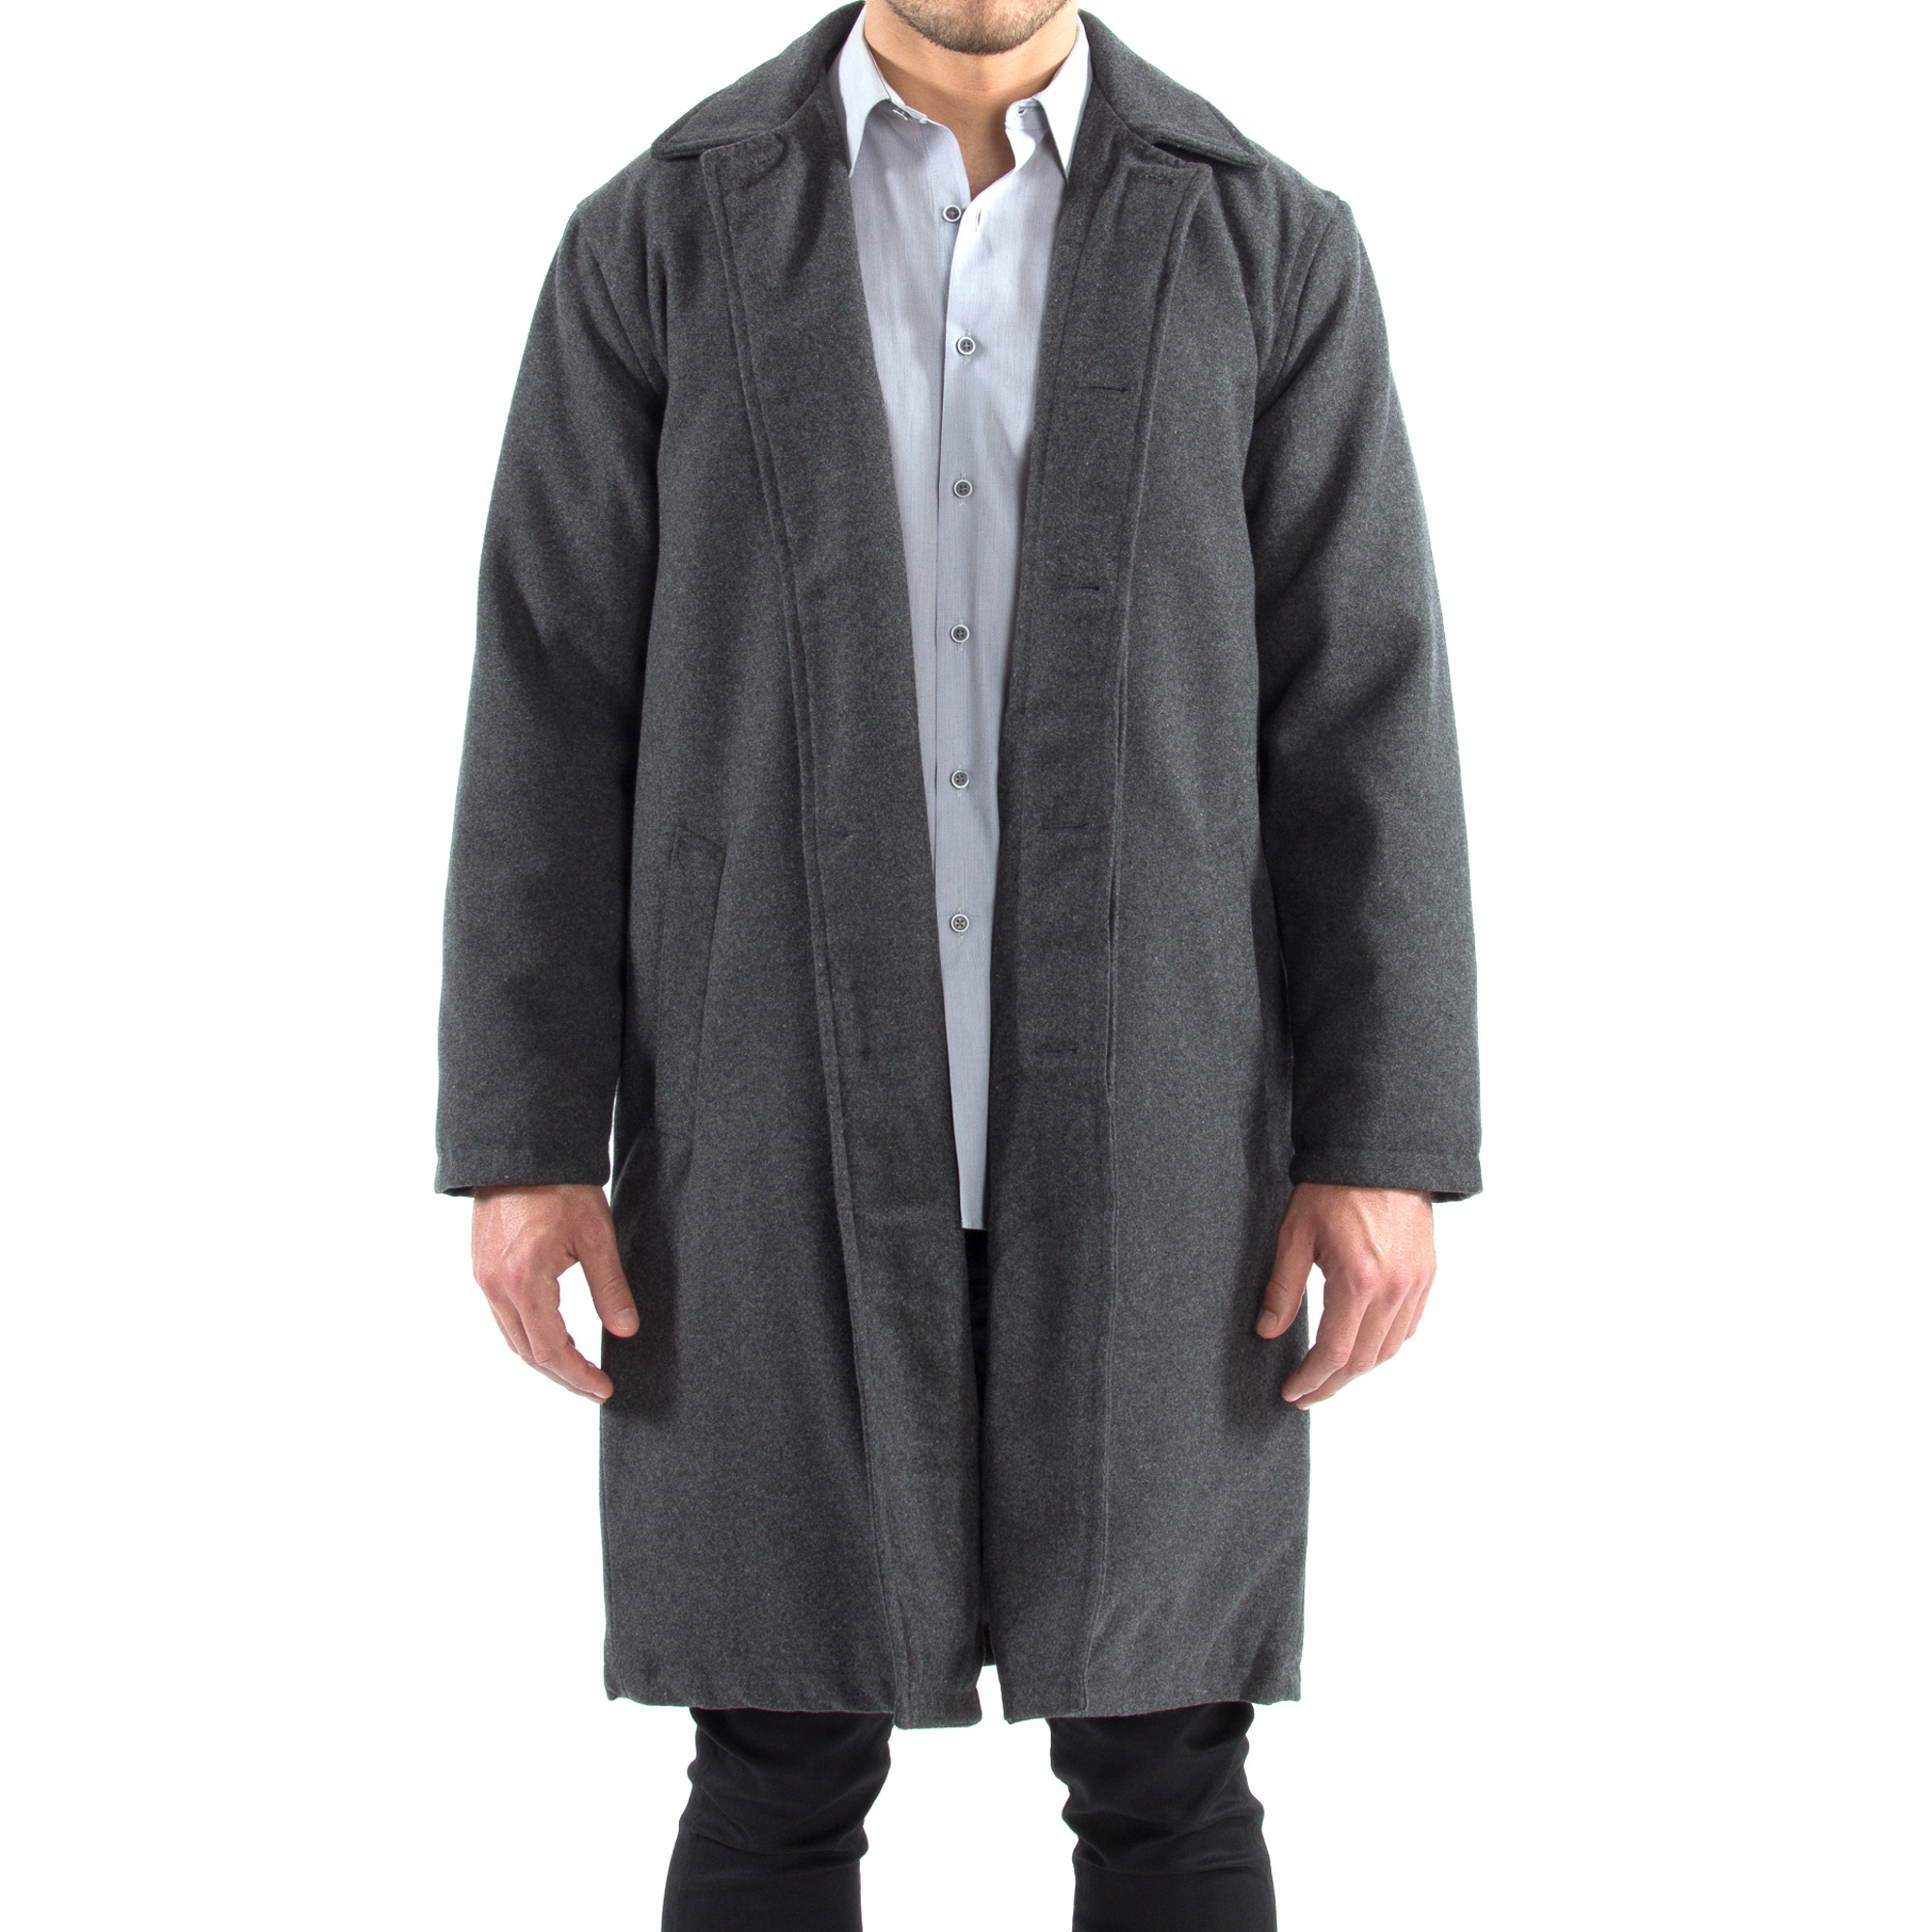 Alpine-Swiss-Mens-Zach-Knee-Length-Jacket-Top-Coat-Trench-Wool-Blend-Overcoat thumbnail 38